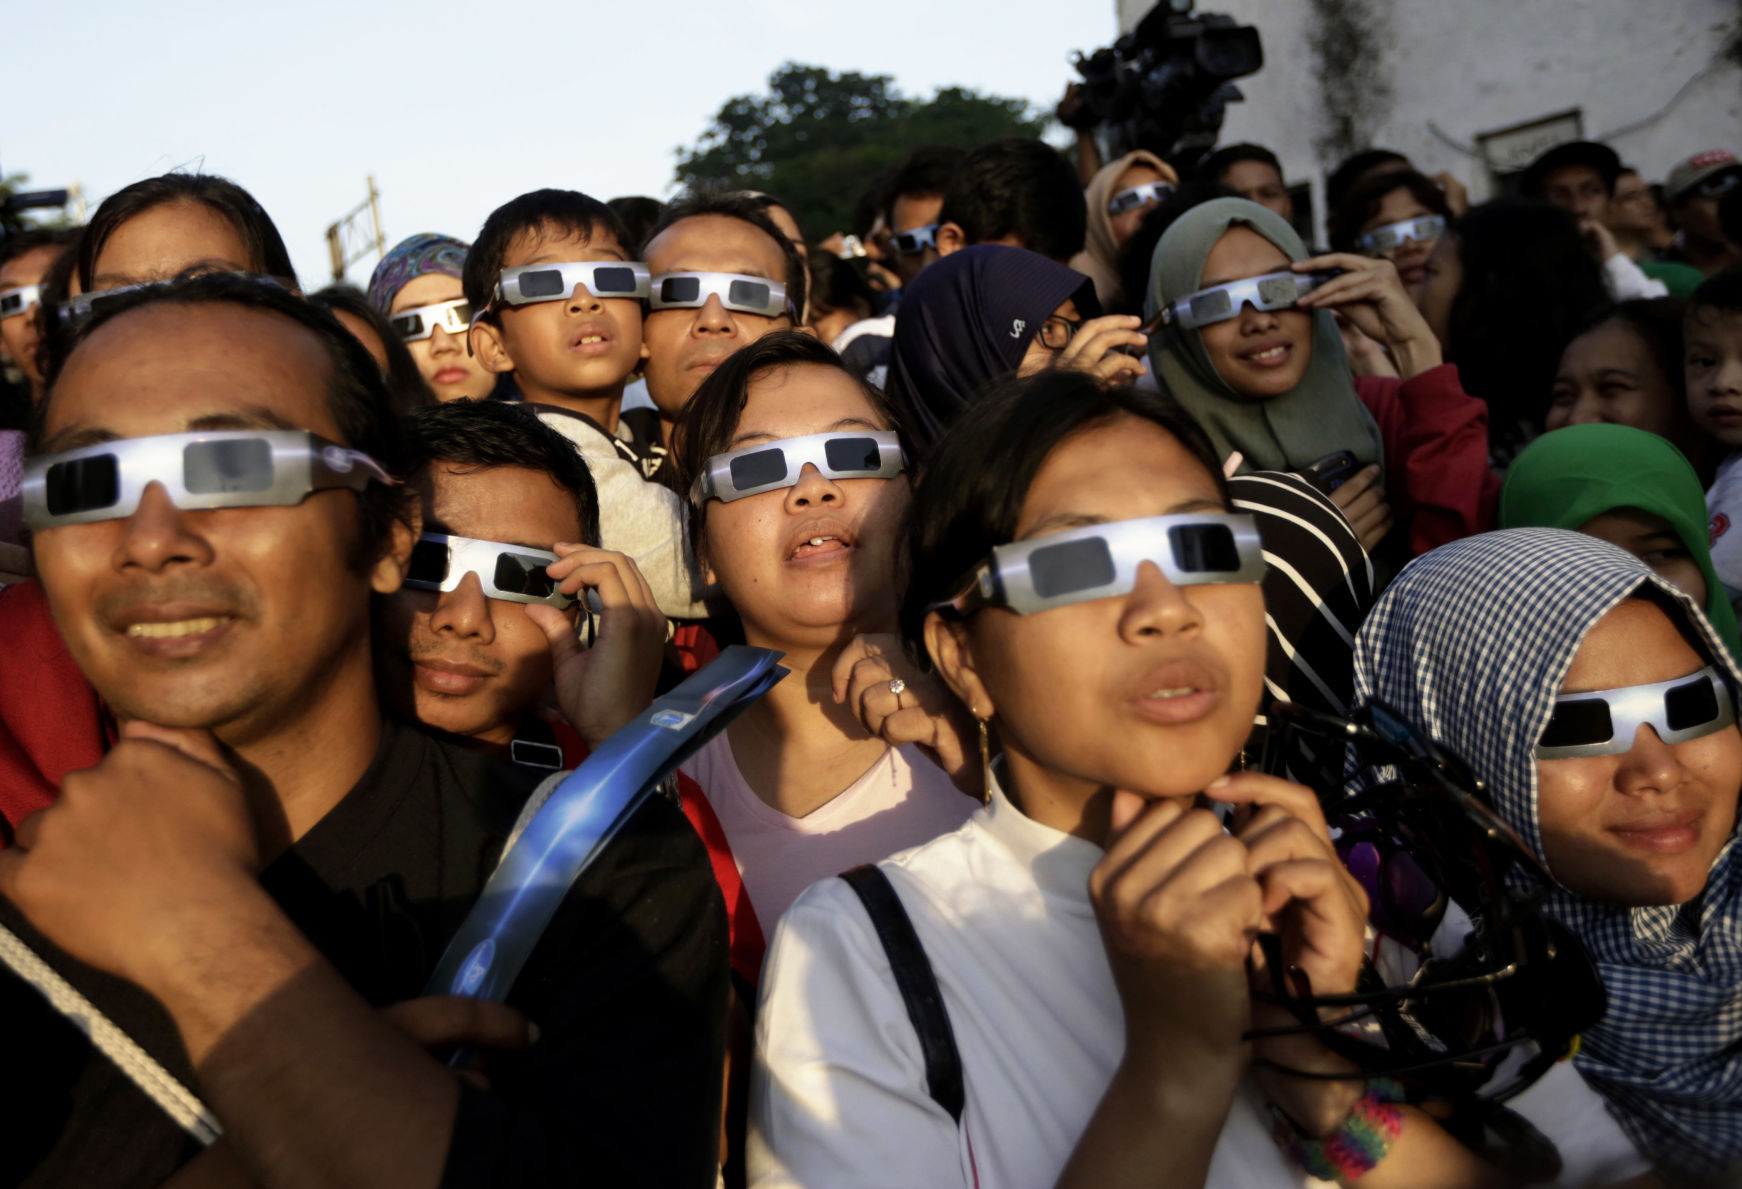 Amazon Issues Refunds for Unverified Eclipse Glasses